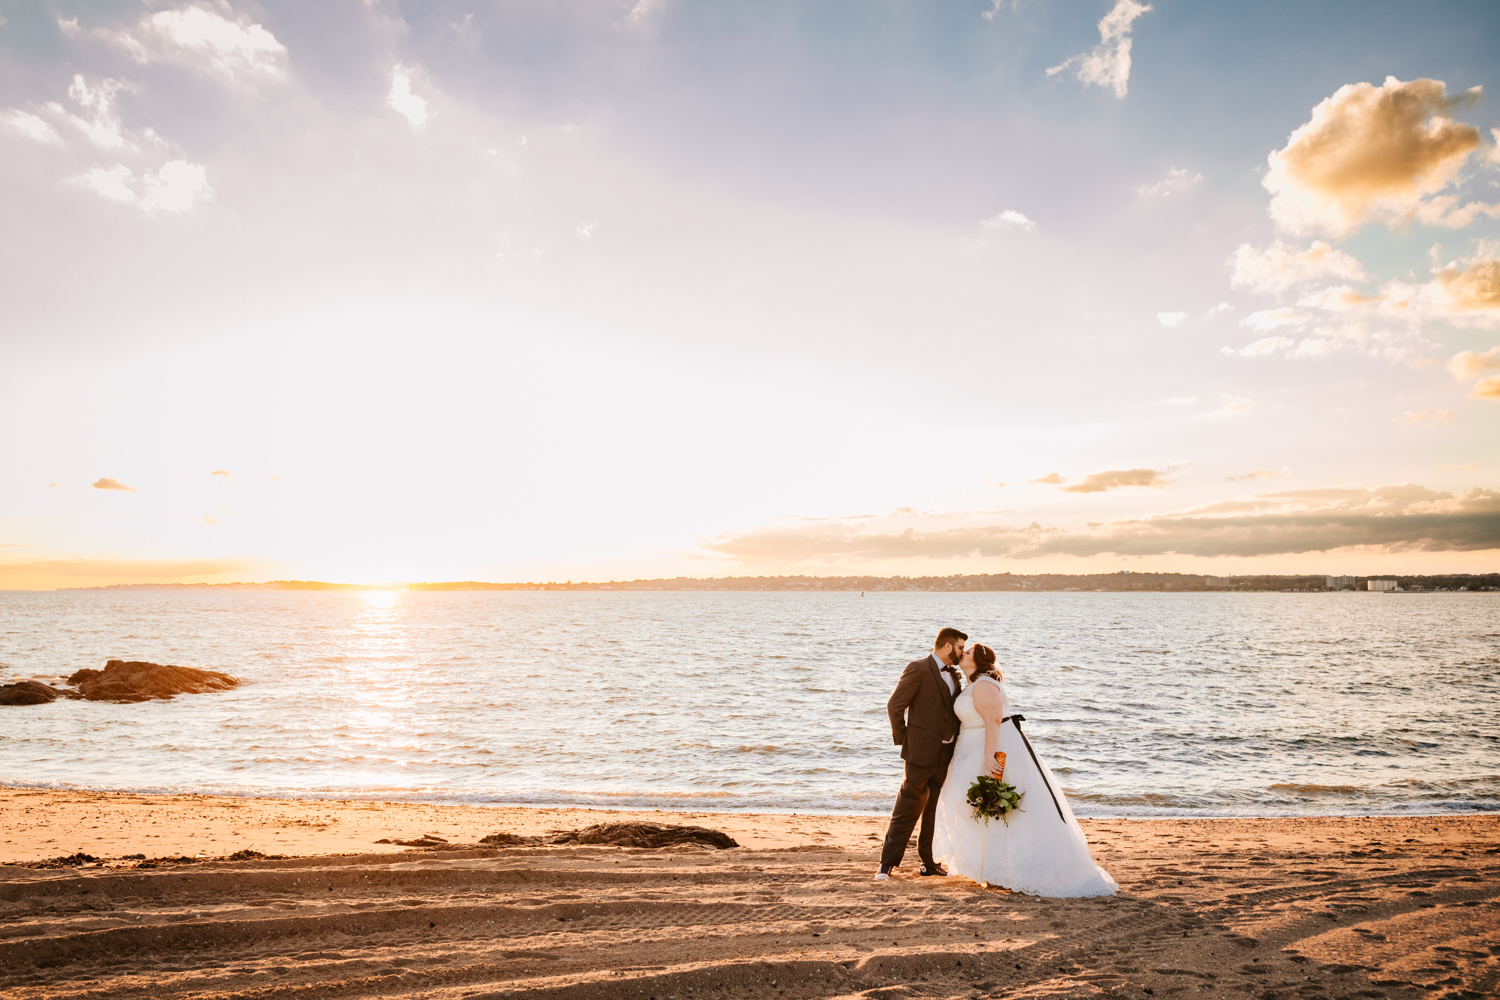 Landscape bride and groom at ocean at sunset